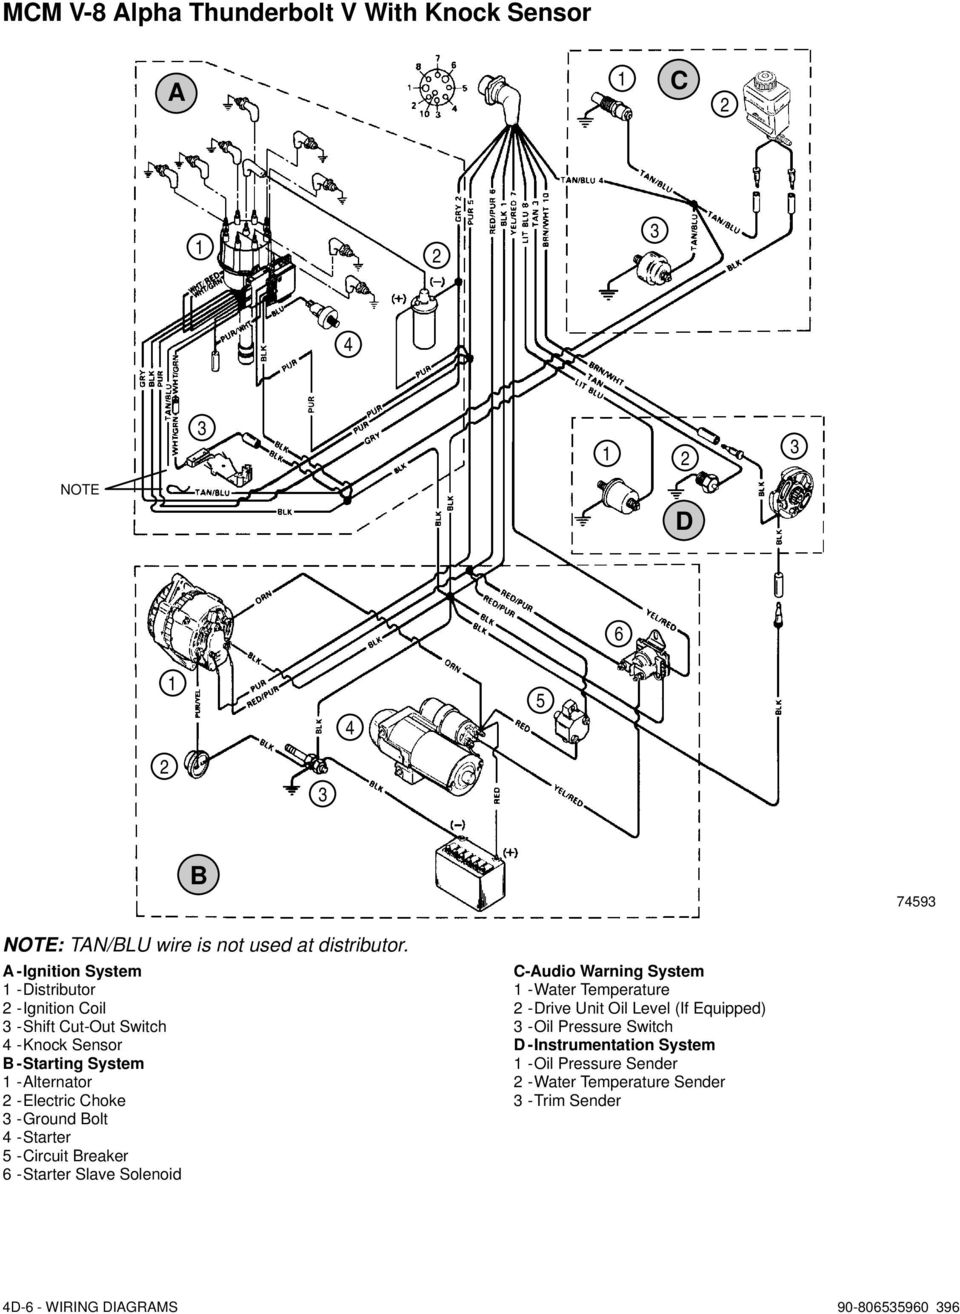 Electrical Systems Wiring Diagrams Pdf 1990 Ford 350 Diesel Solenoid Ground Olt Starter Ircuit Reaker Slave Udio Warning System